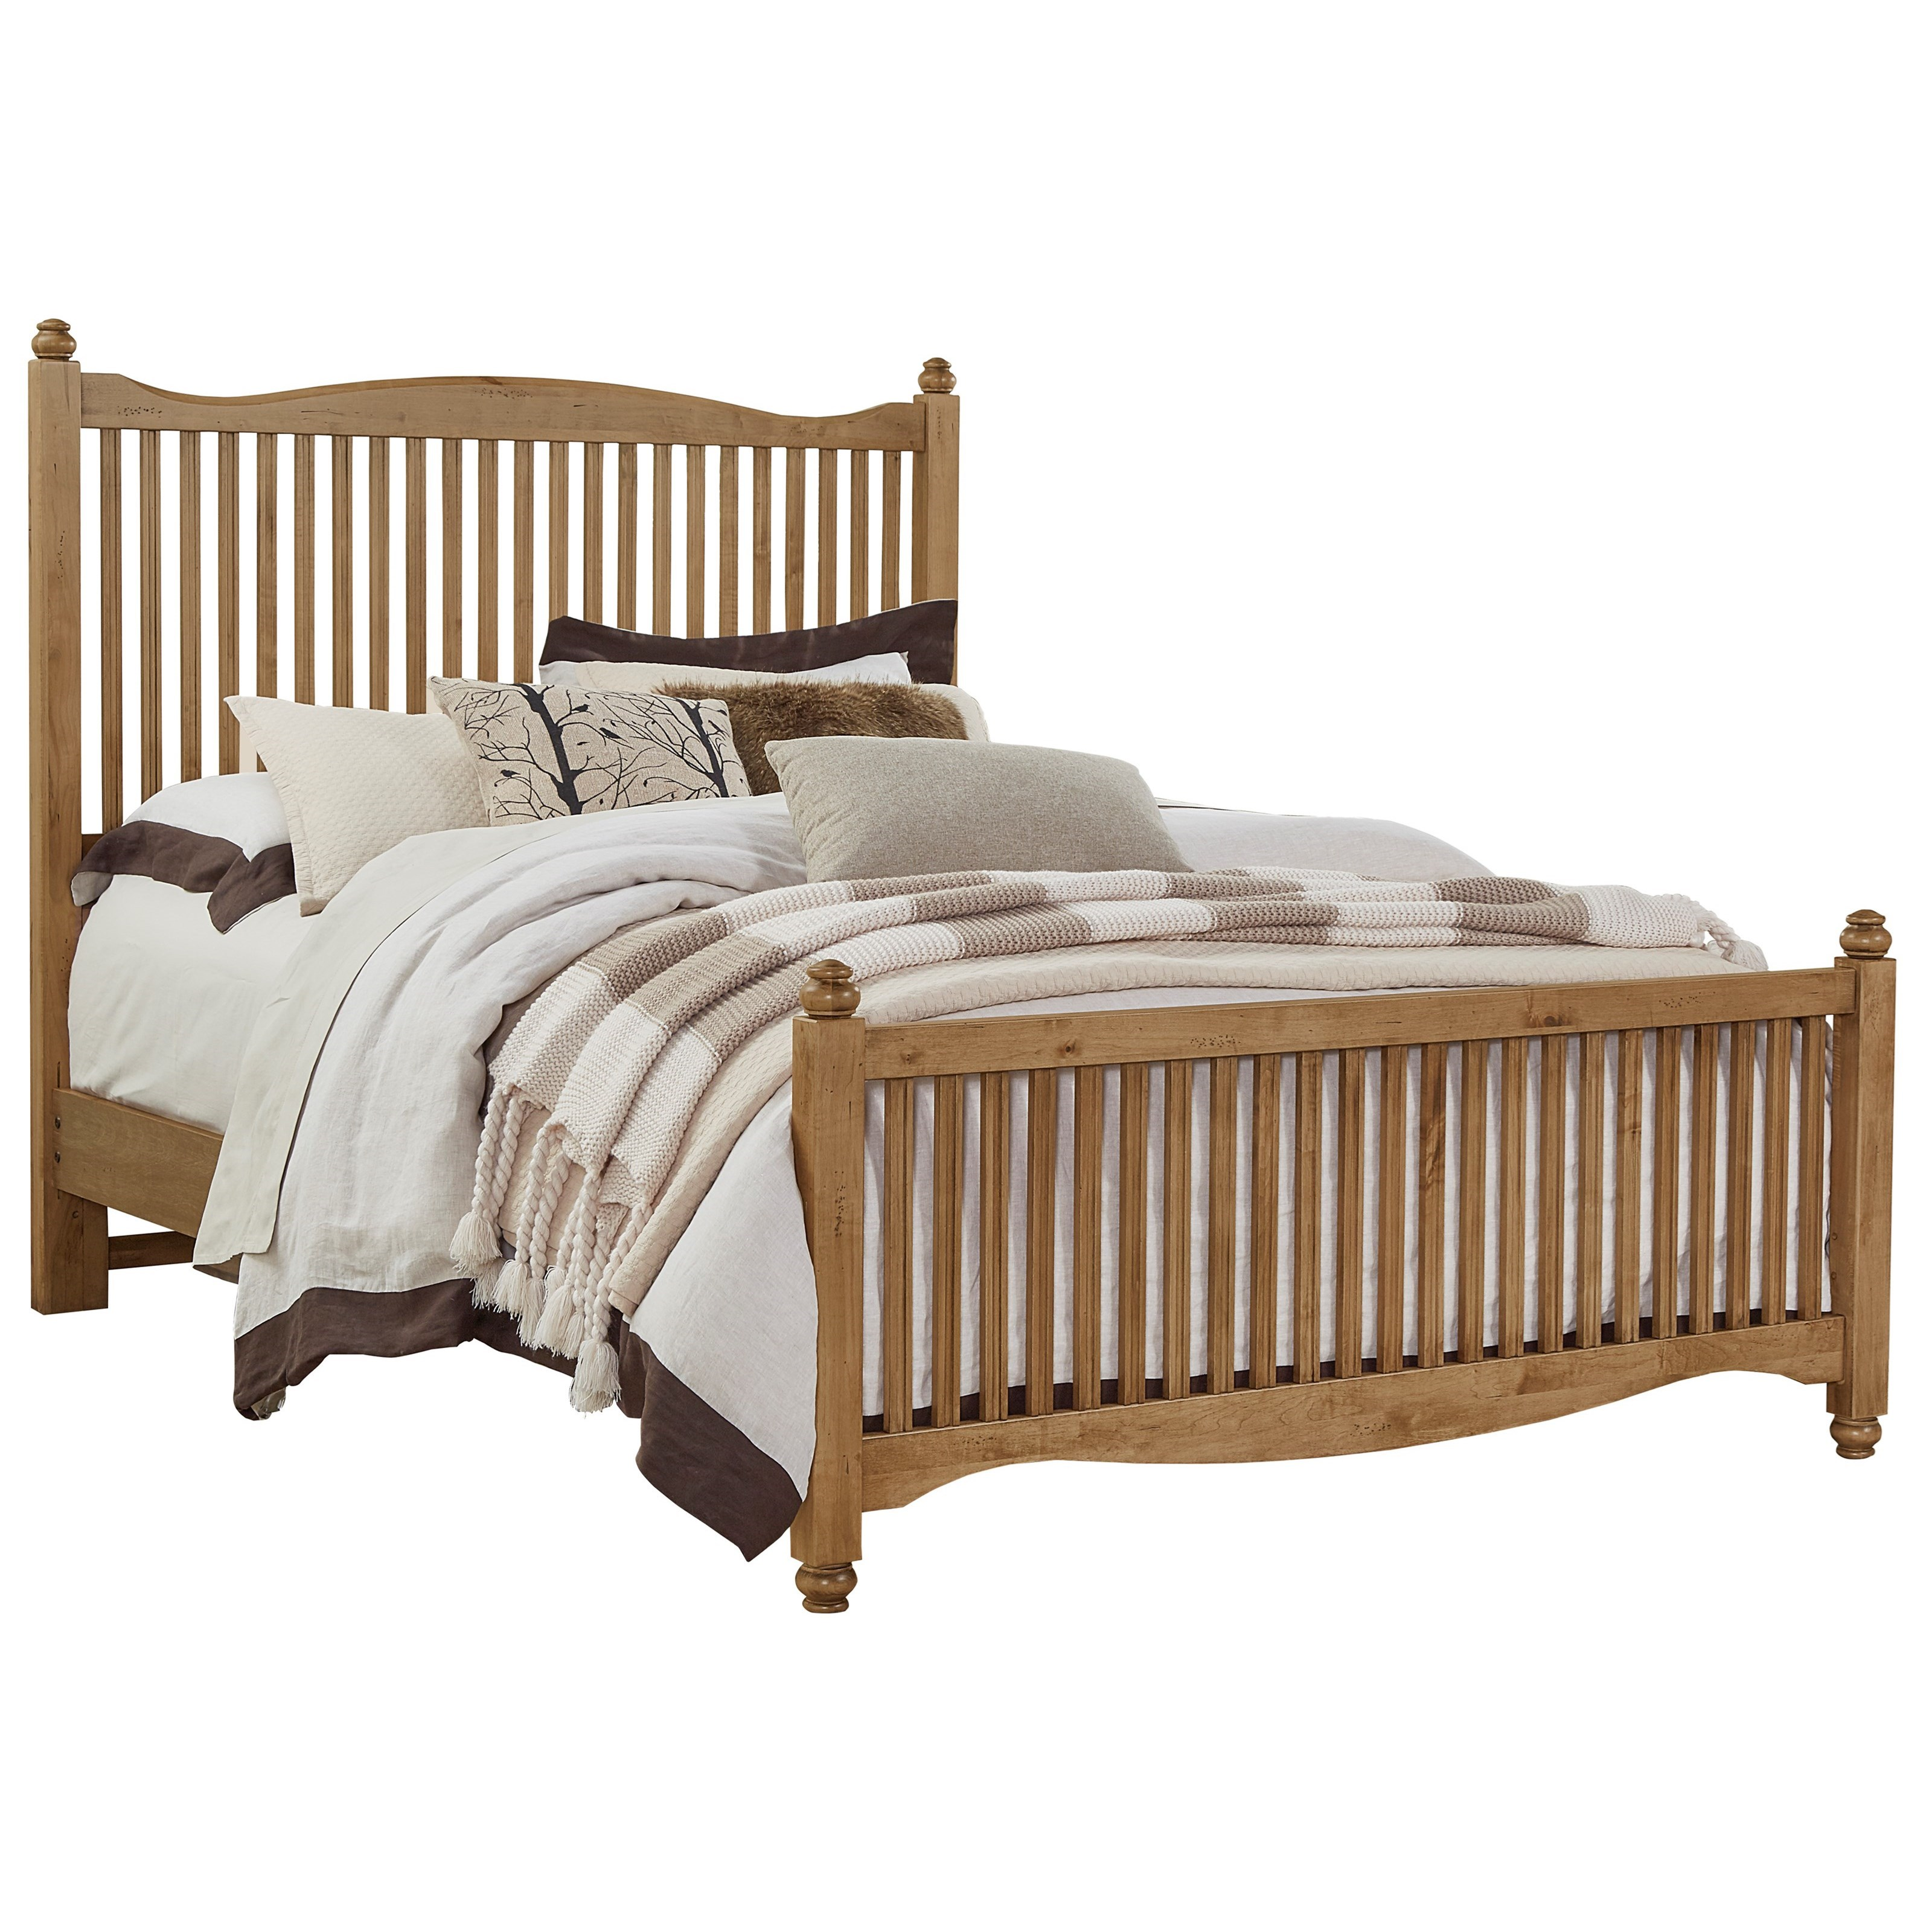 Vaughan Bassett American Maple Twin Slat Bed - Item Number: 402-377+773+900